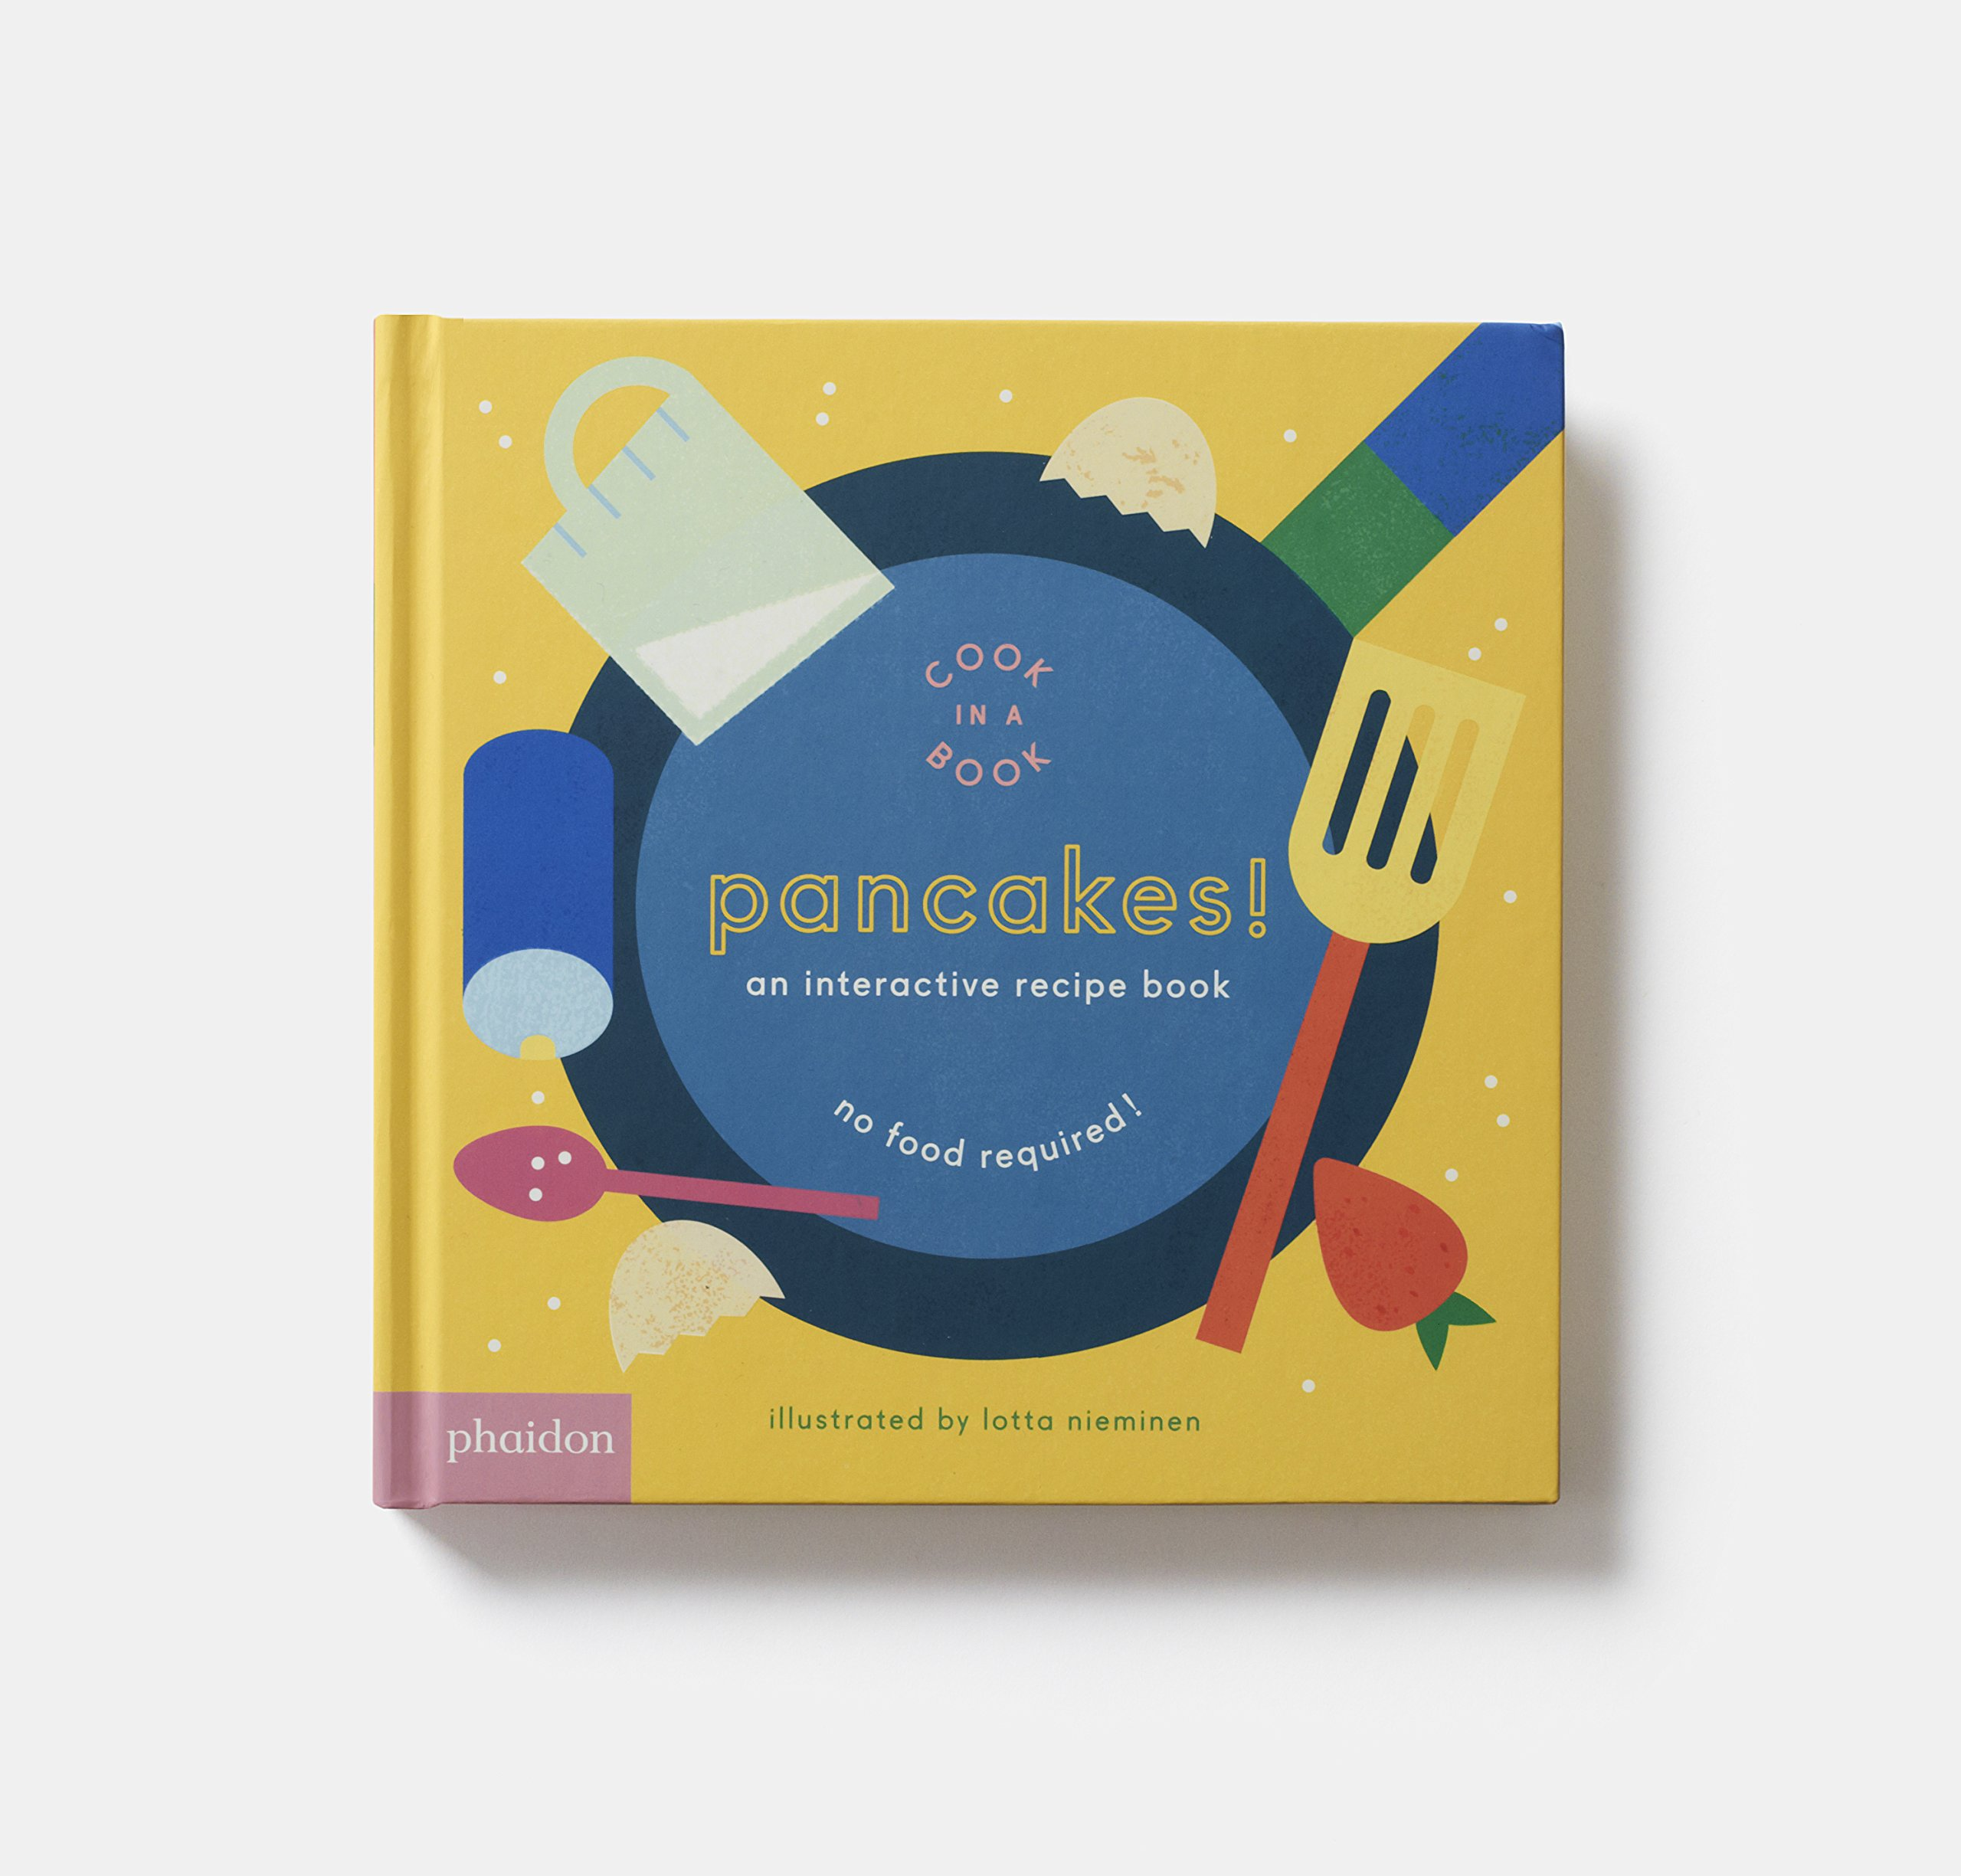 Pancakes an interactive recipe book cook in a book lotta an interactive recipe book cook in a book lotta nieminen 9780714872834 amazon books forumfinder Gallery